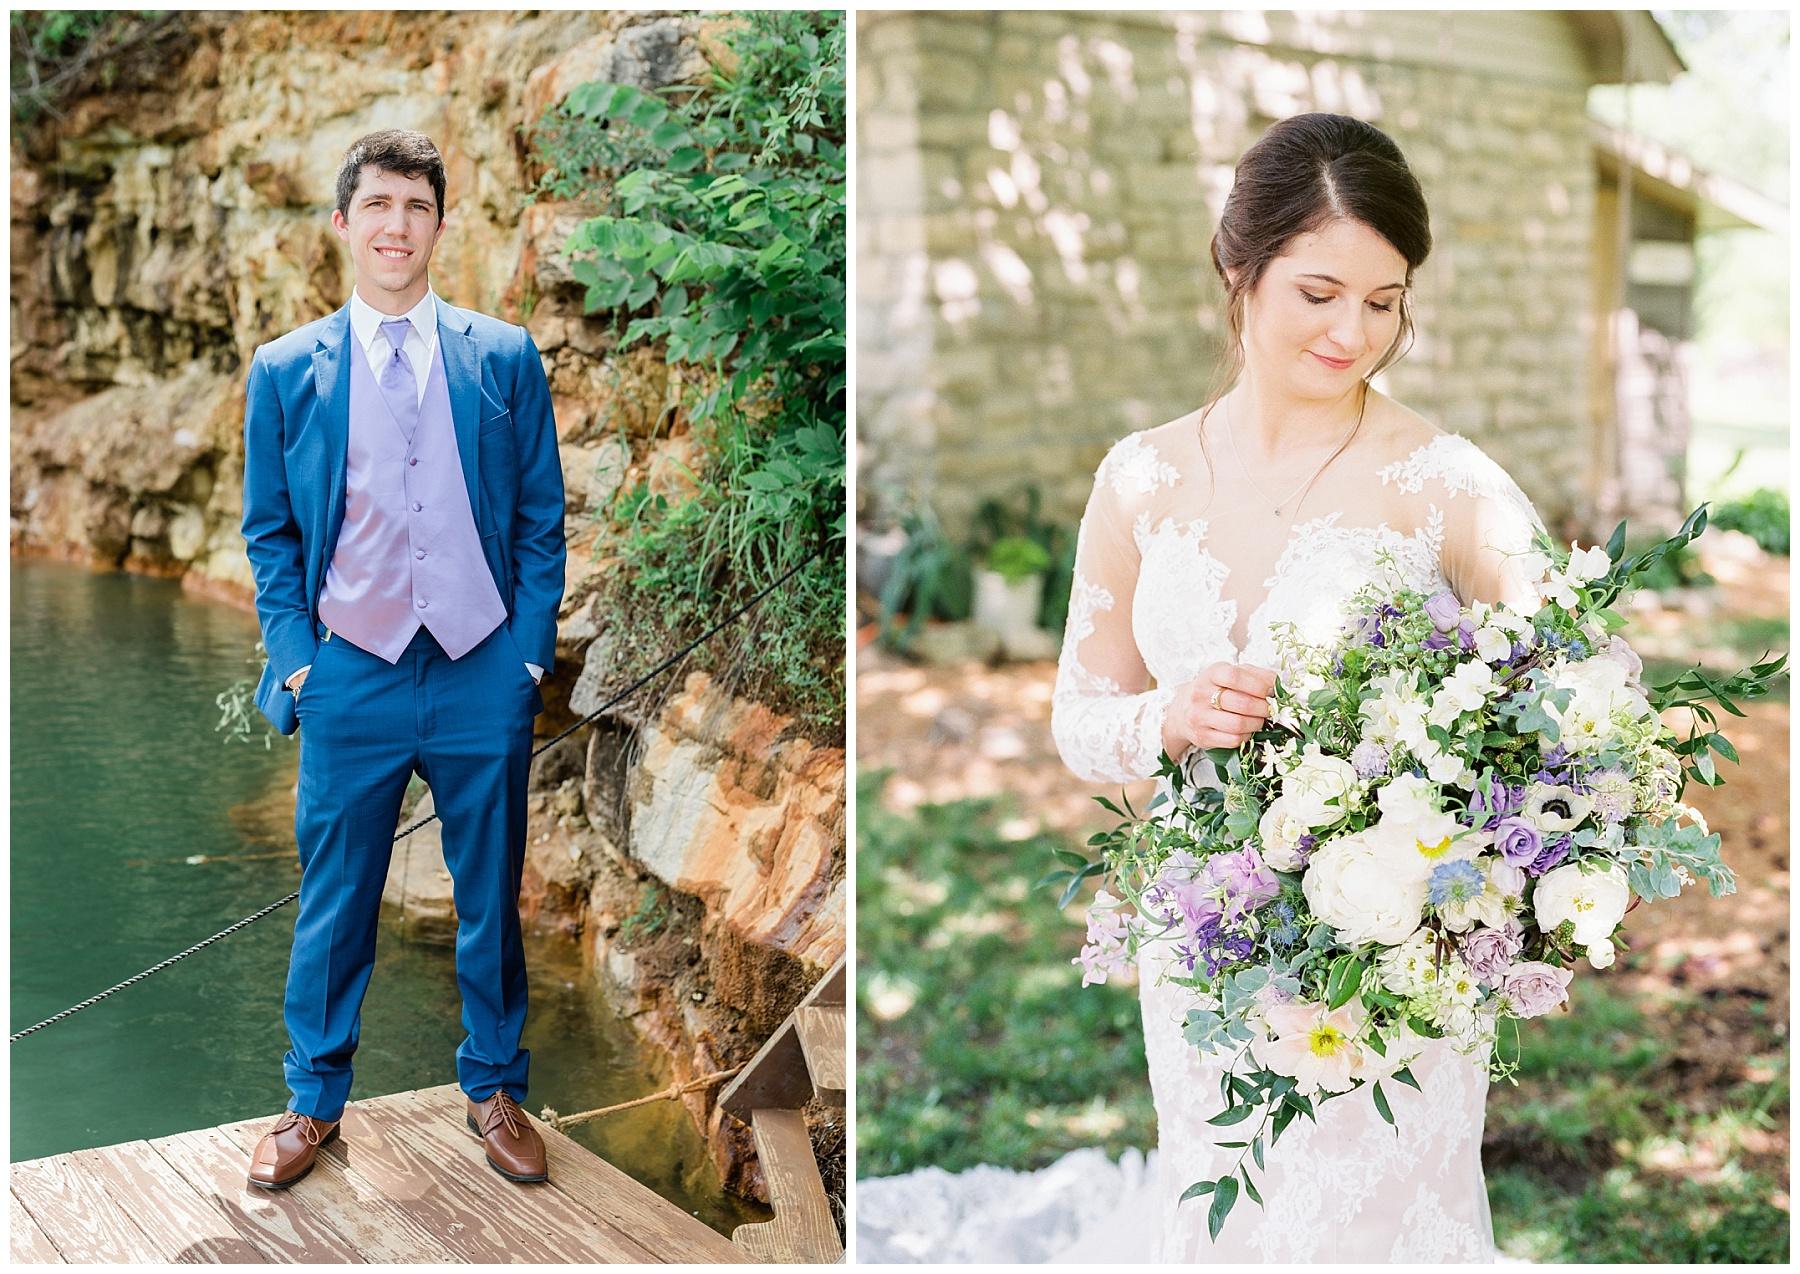 Intimate Mountain Hues Inspired Summer Wedding at Wildcliff Weddings and Events by Kelsi Kliethermes Photography Best Missouri and Maui Wedding Photographer_0047.jpg